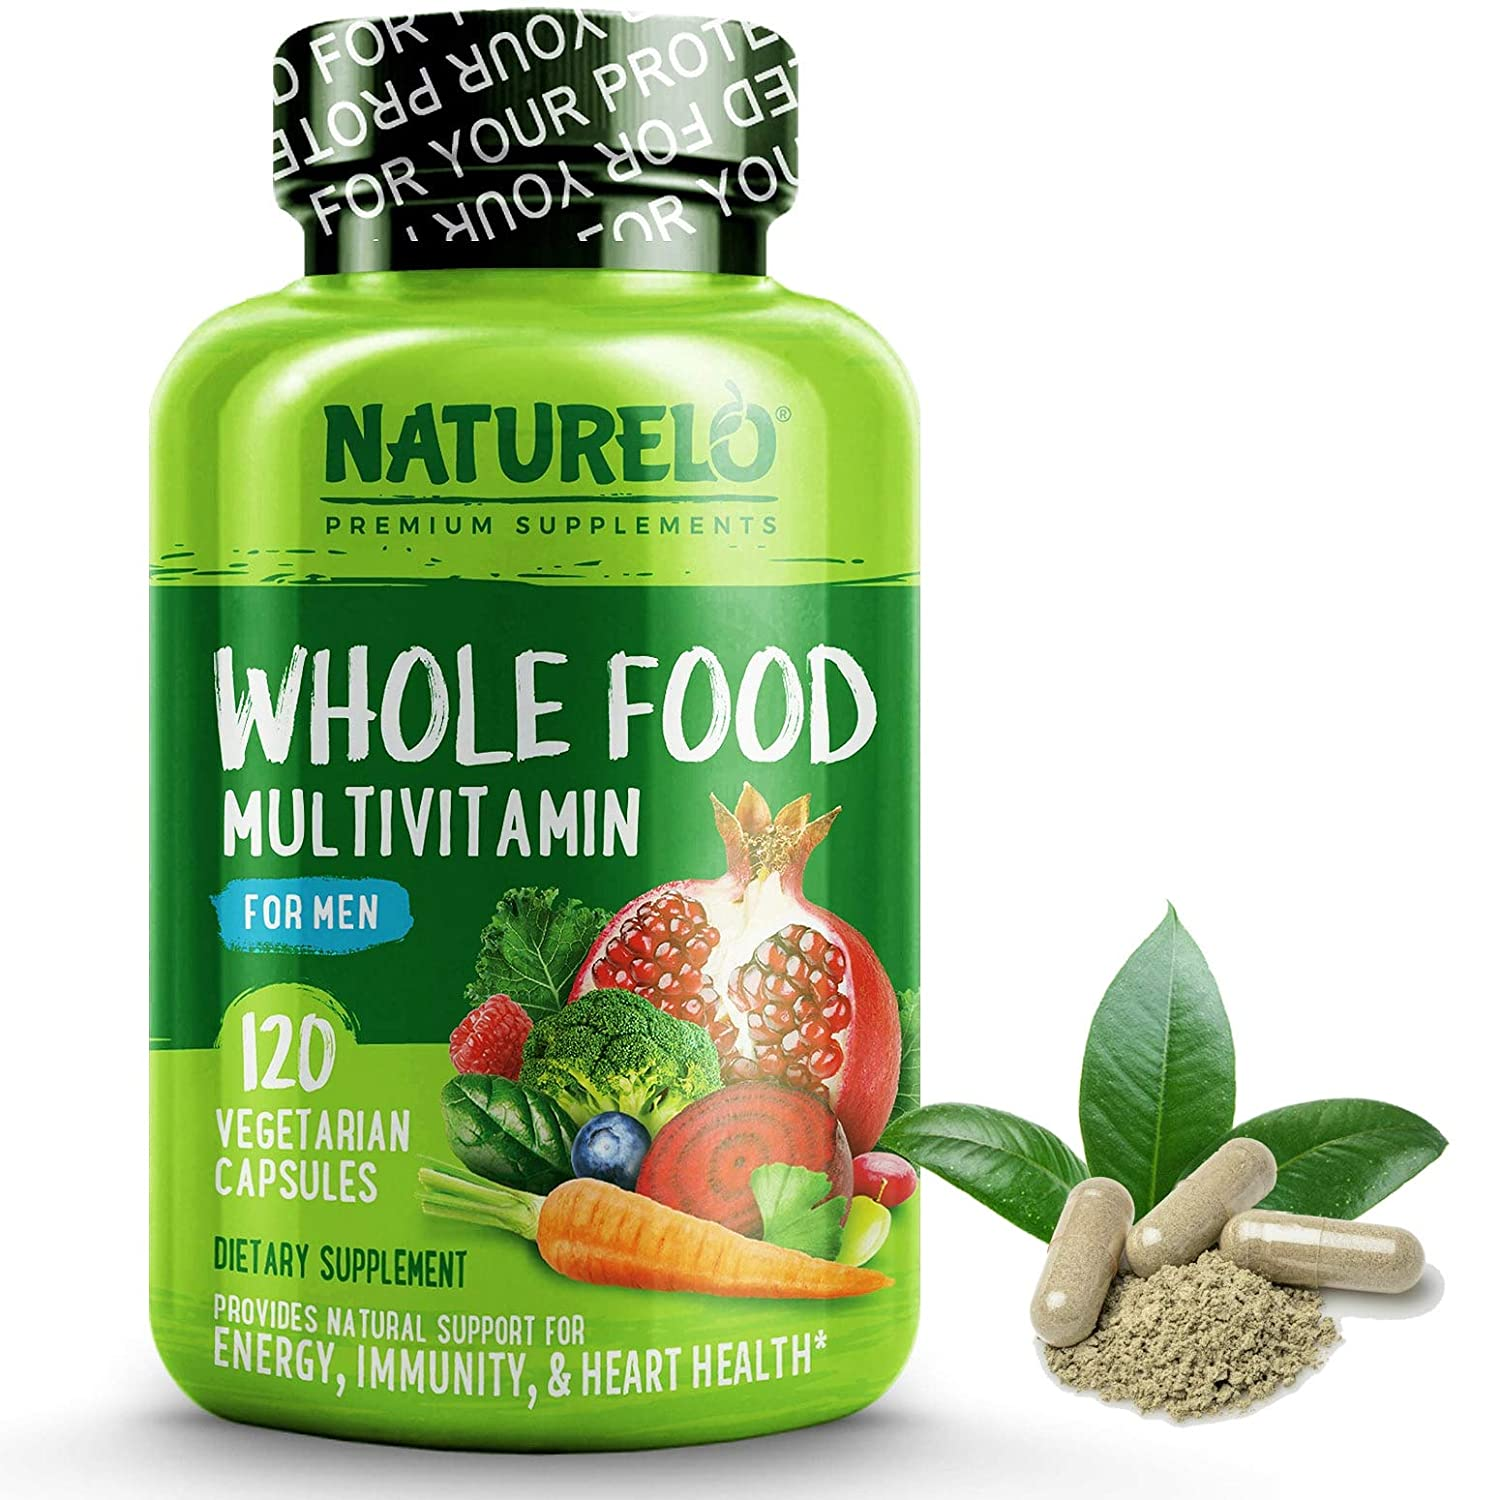 NATURELO Whole Food Multivitamin for Men – with Natural Vitamins, Minerals, Organic Extracts – Vegetarian – Best for Energy, Brain, Heart, Eye Health – 120 Vegan Capsules